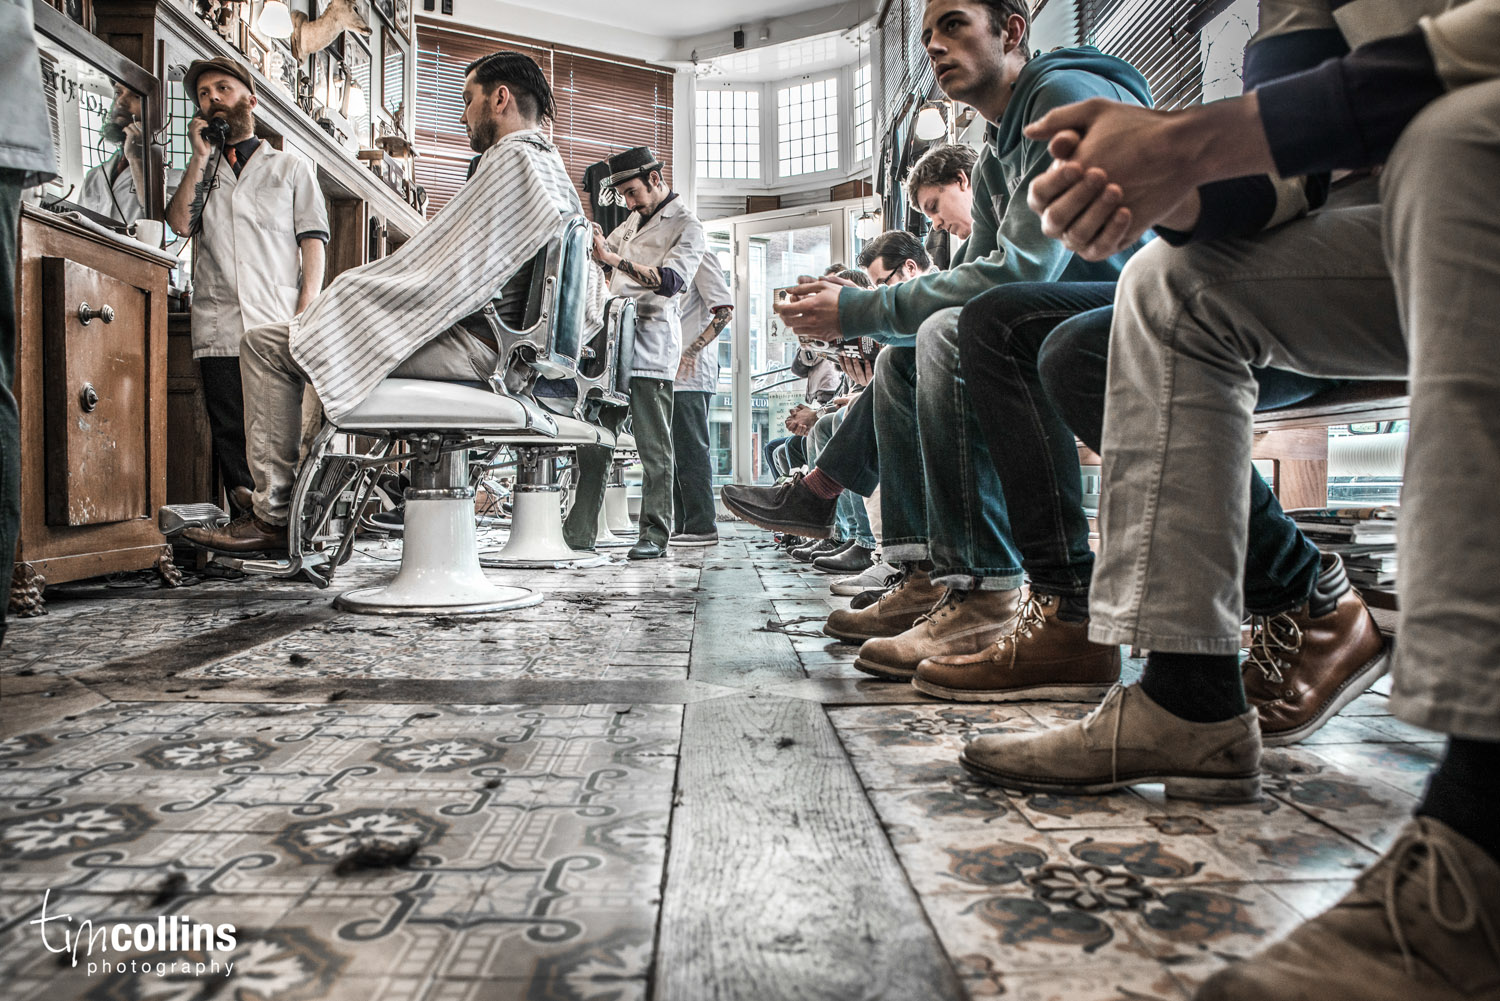 Tim+Collins+Photography+-+Schorem barber shop-.jpg